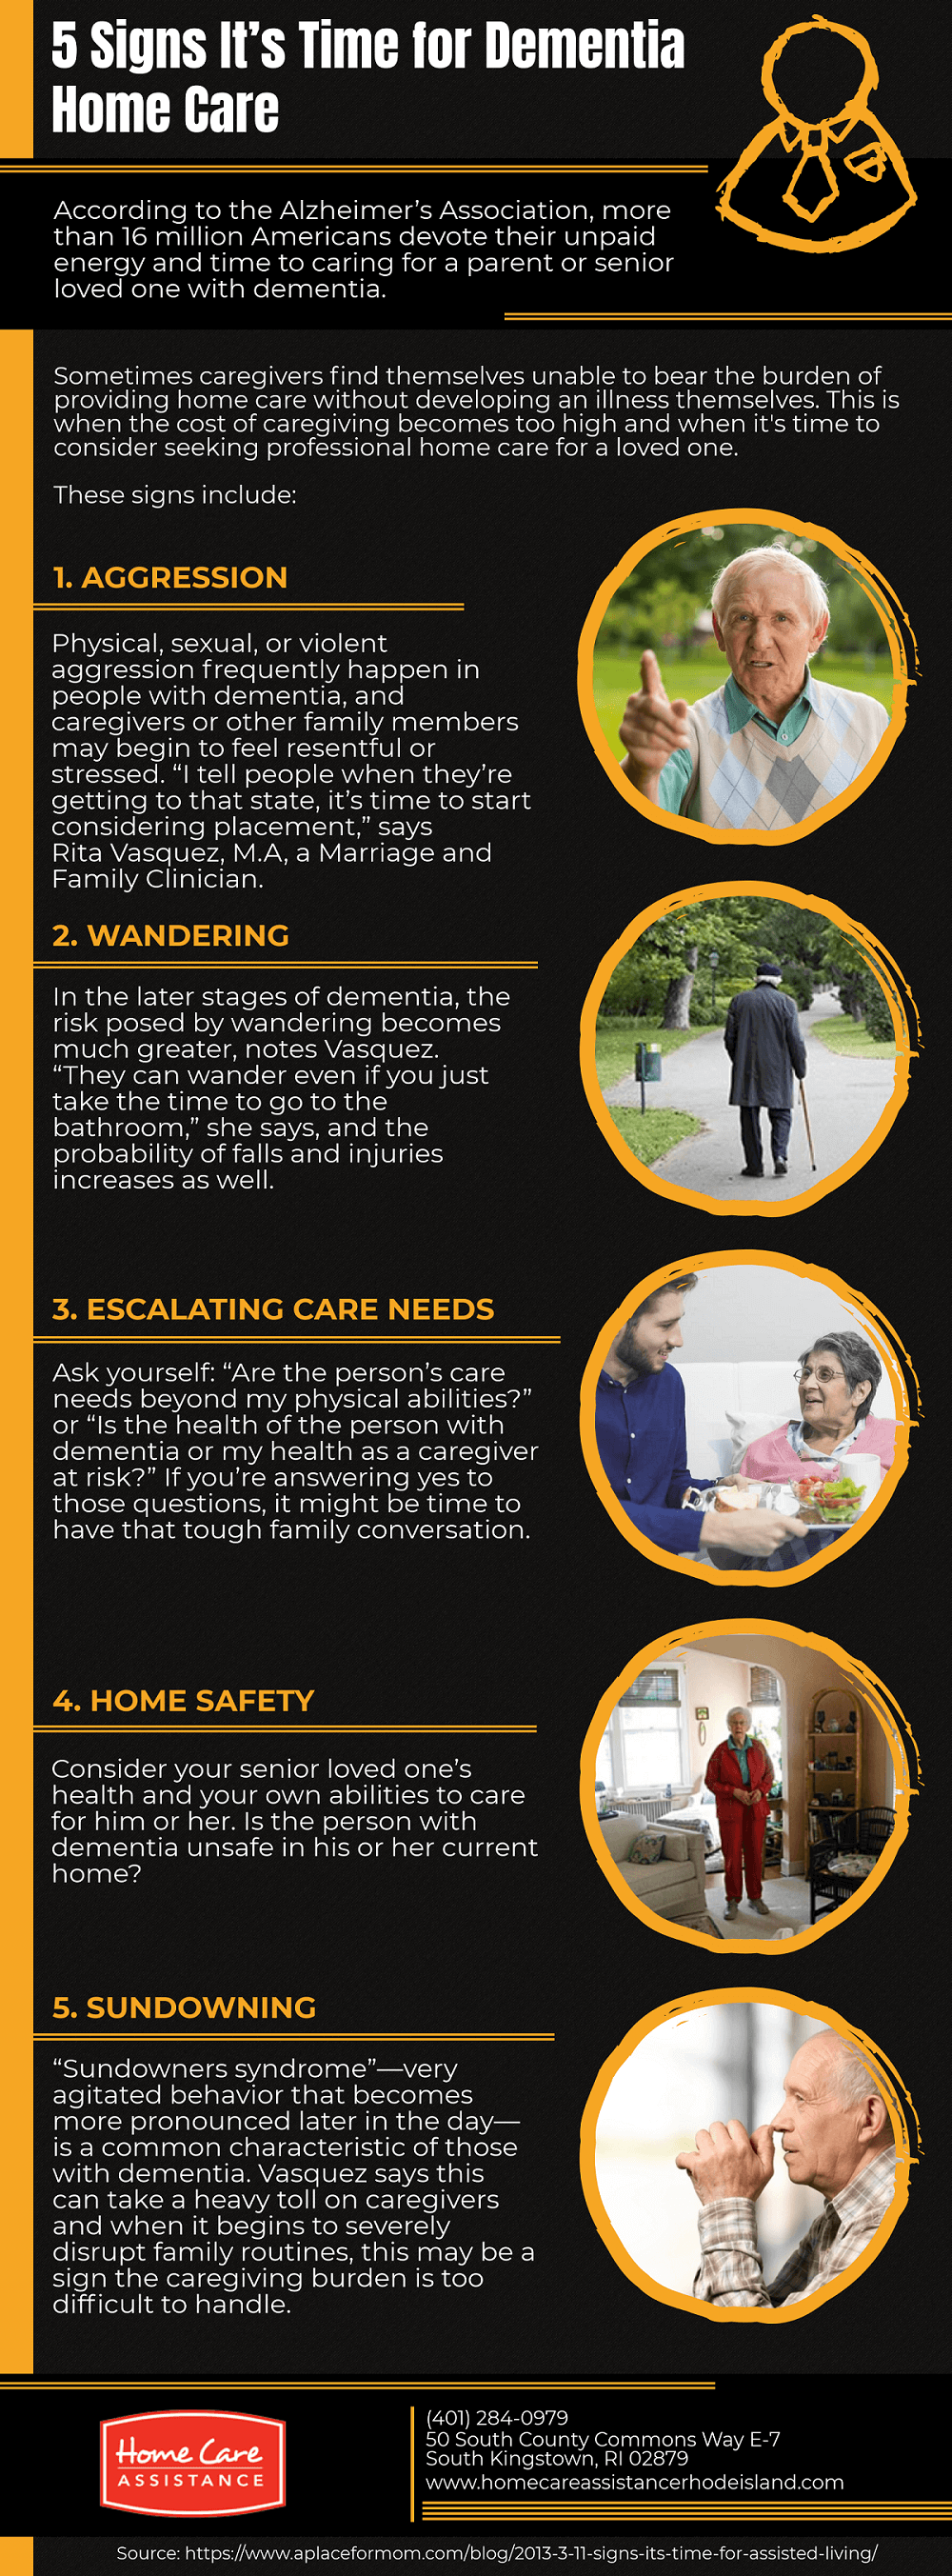 5 Signs It's Time for Dementia Home Care [Infographic]